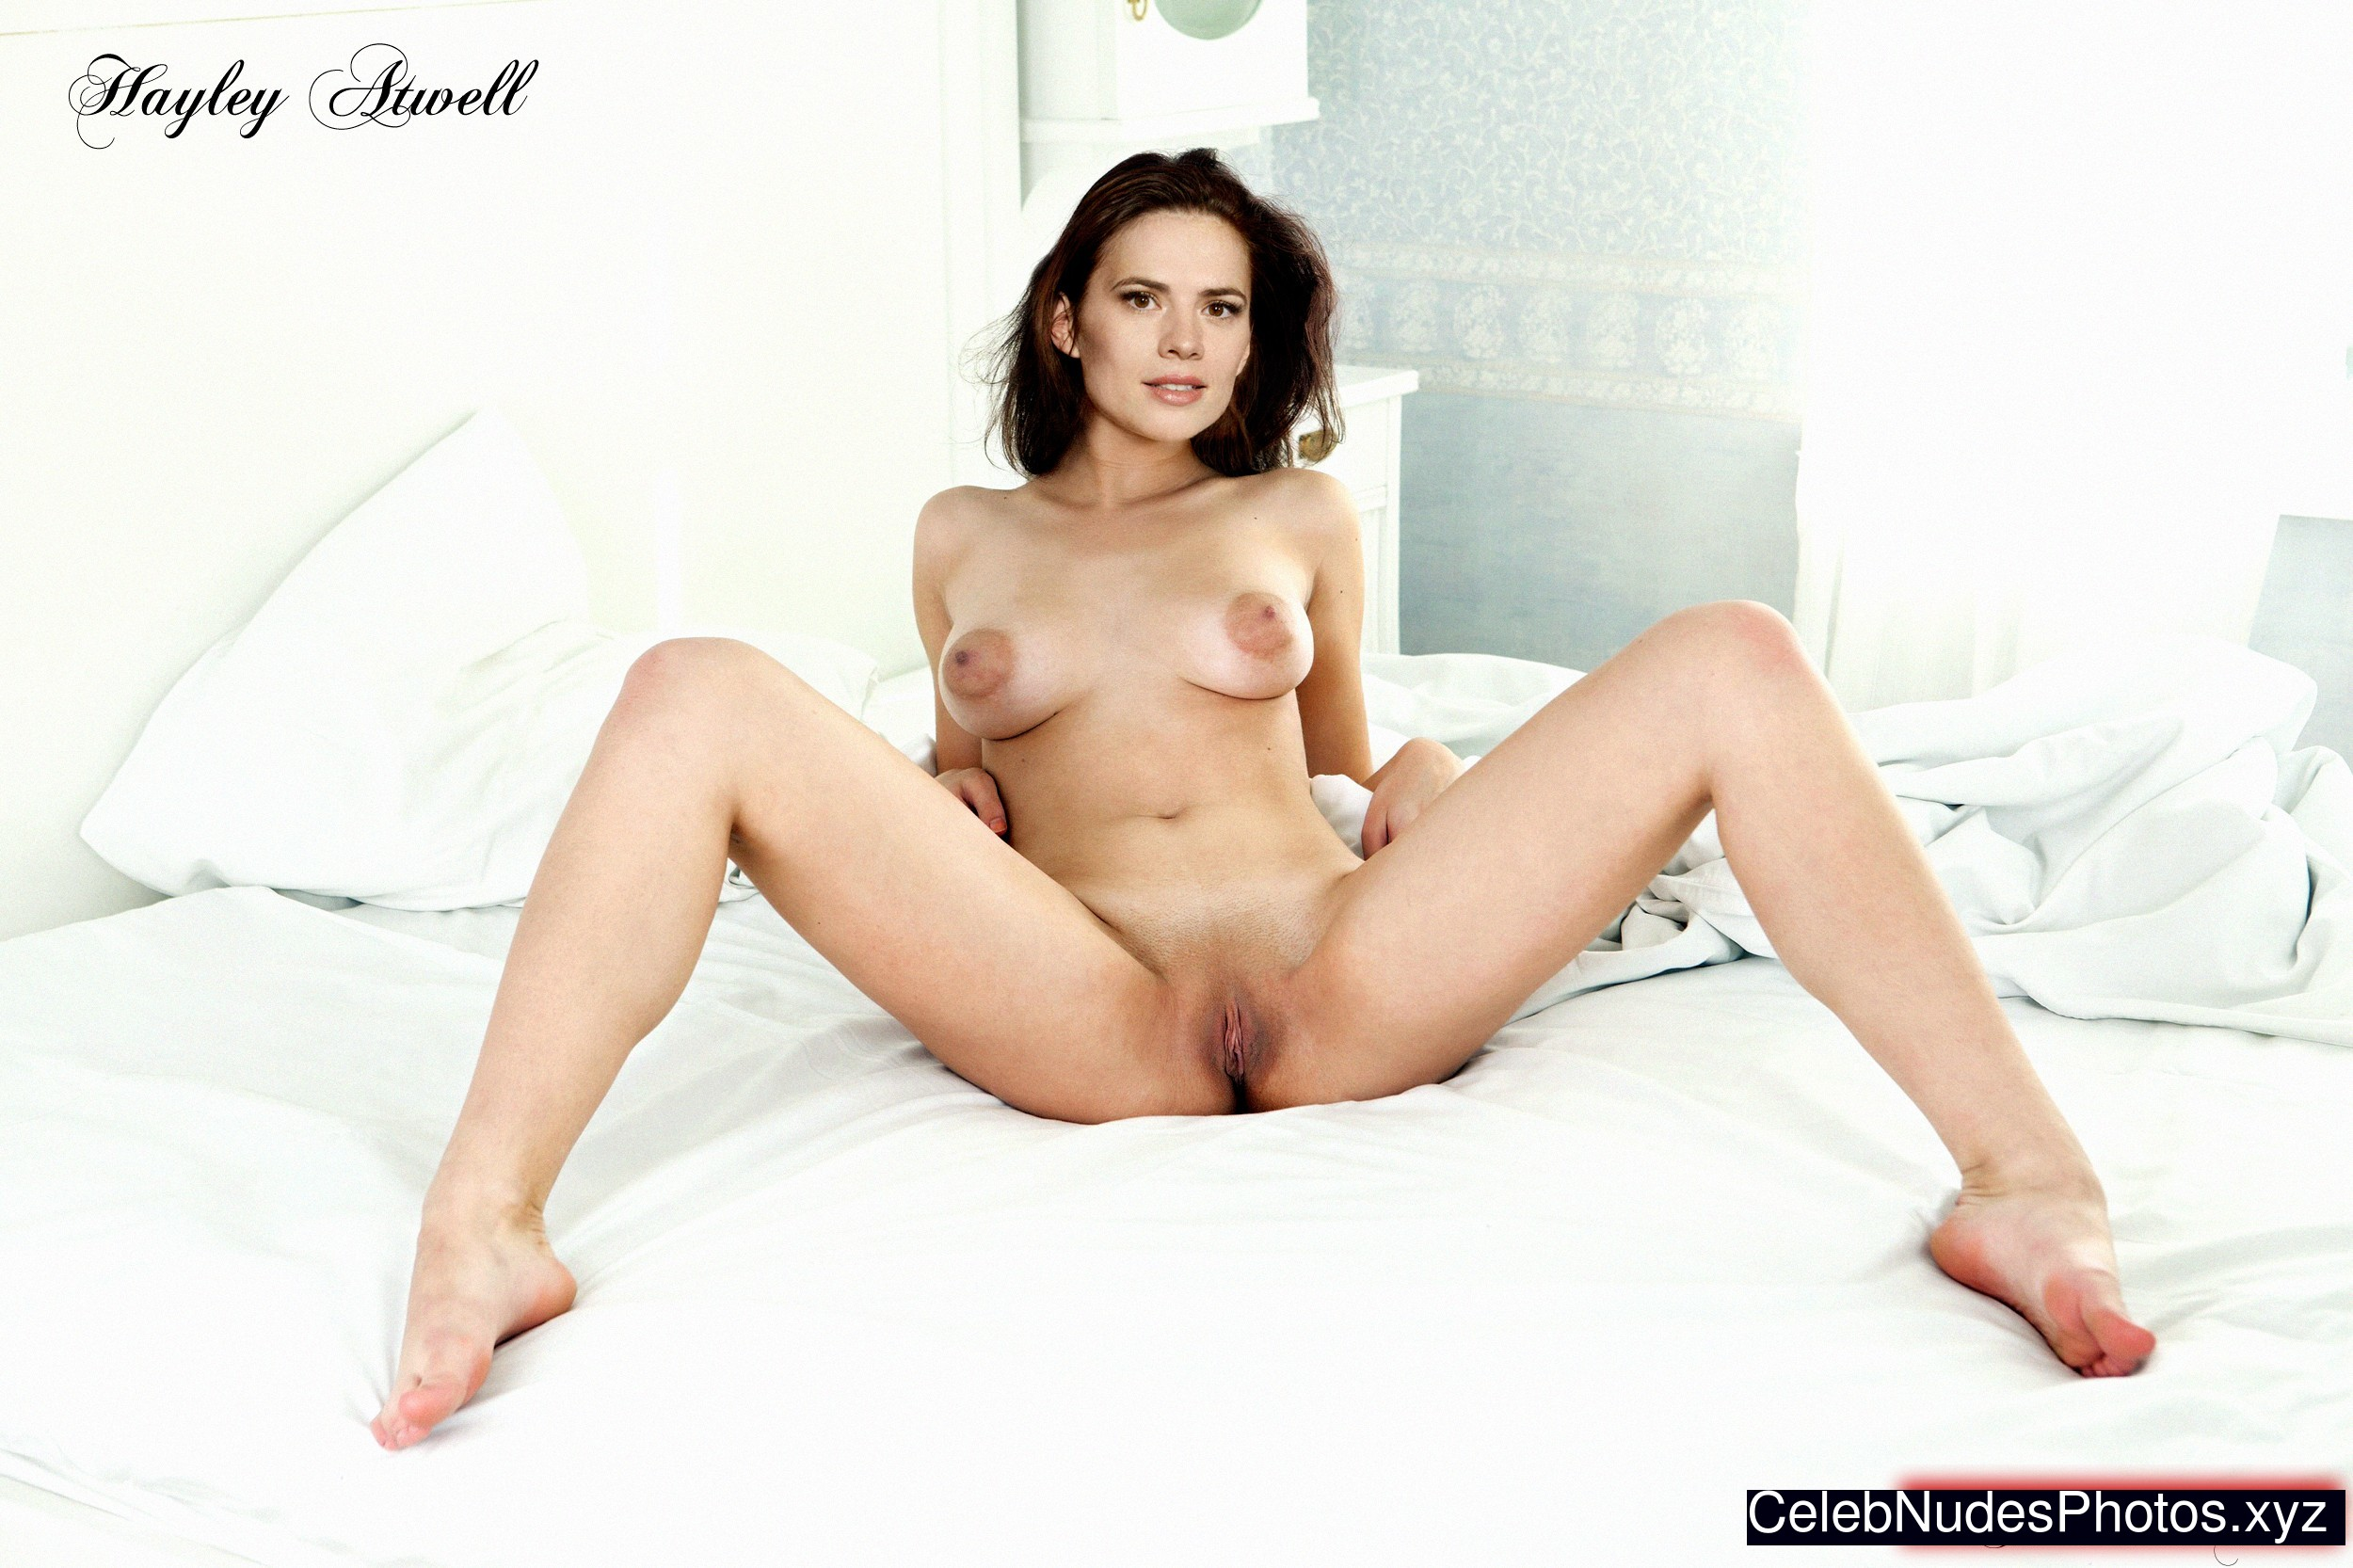 Hayley Atwell Nude Celeb Pic sexy 3